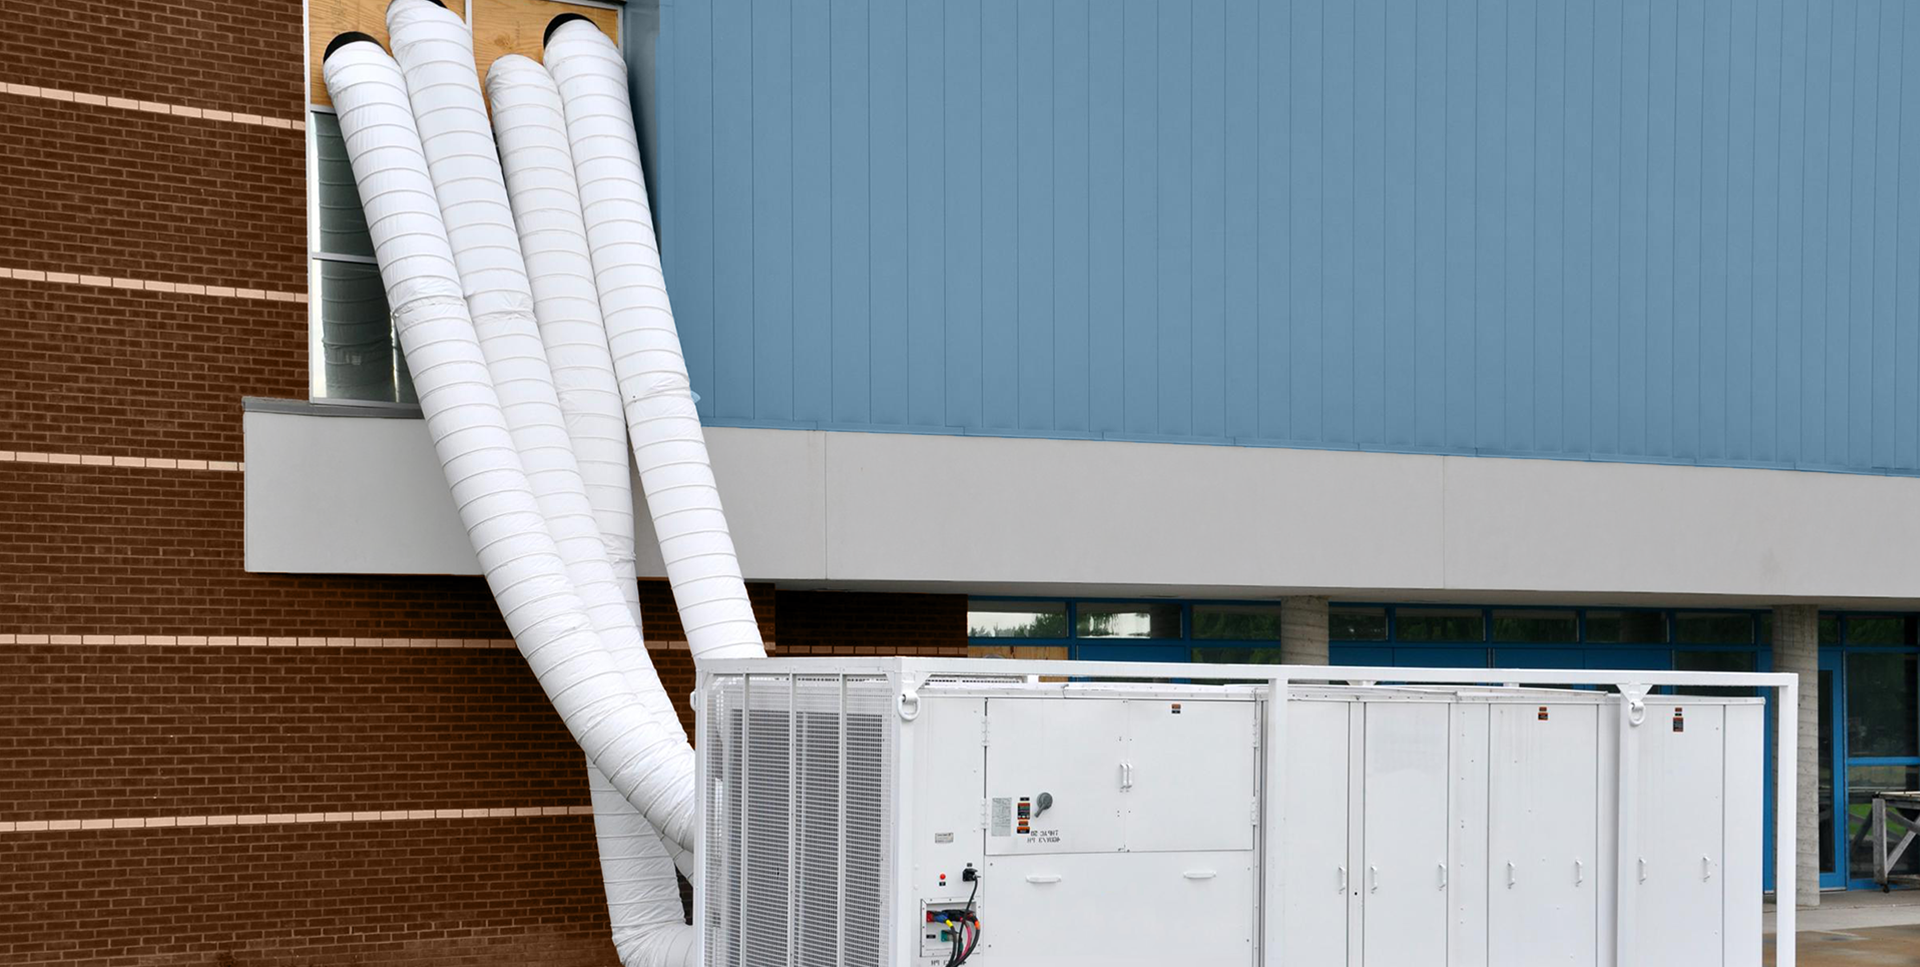 NHG Temporary Emergency Cooling Services